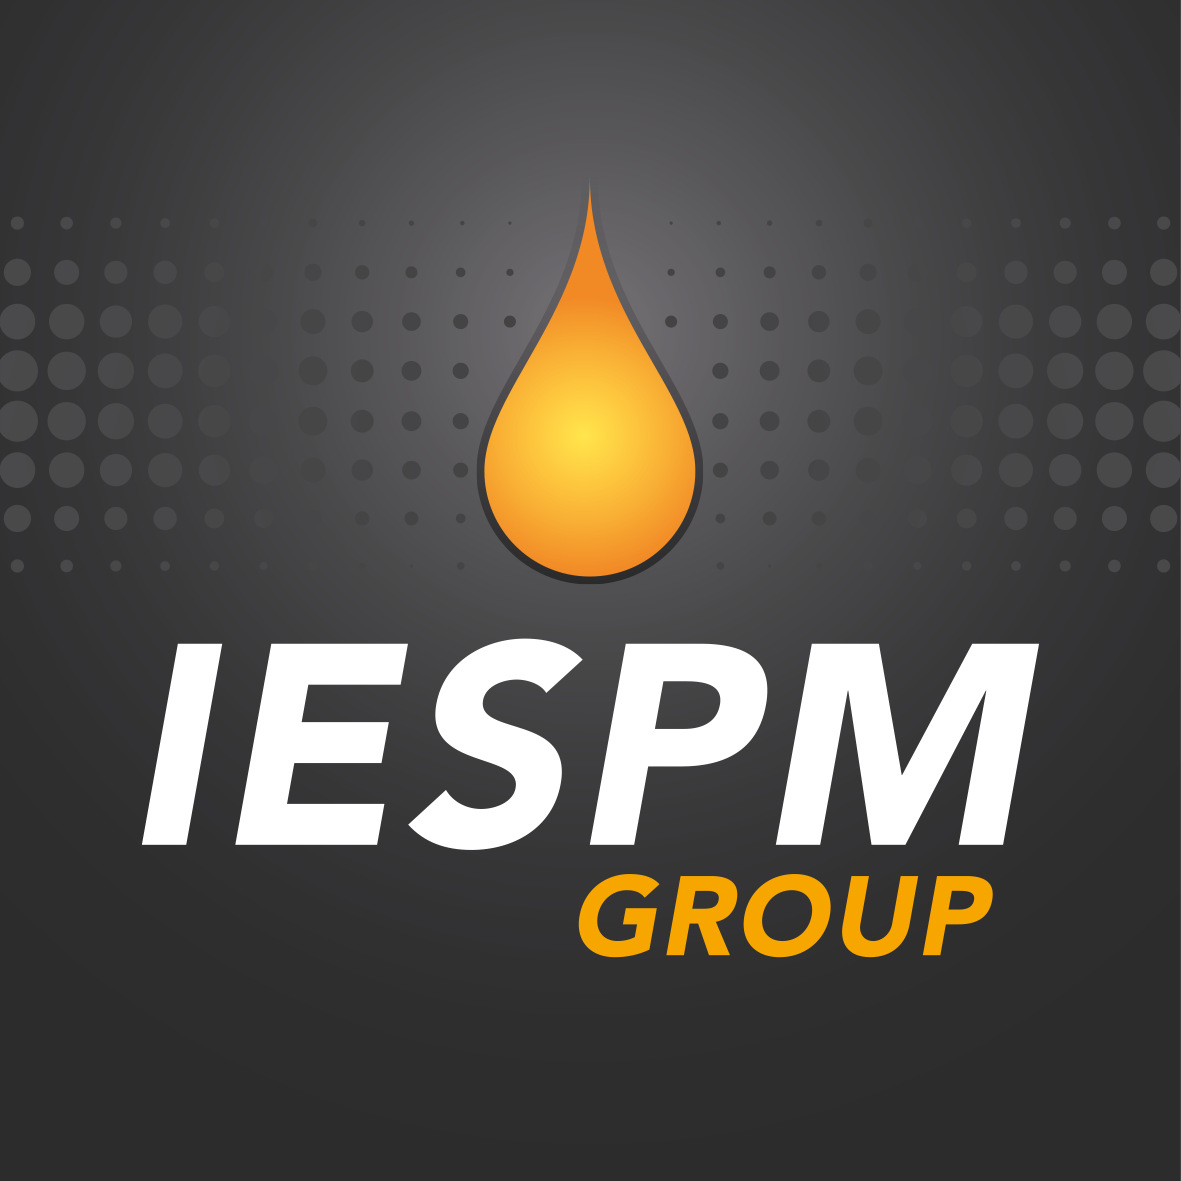 logo-IESPM-GROUP